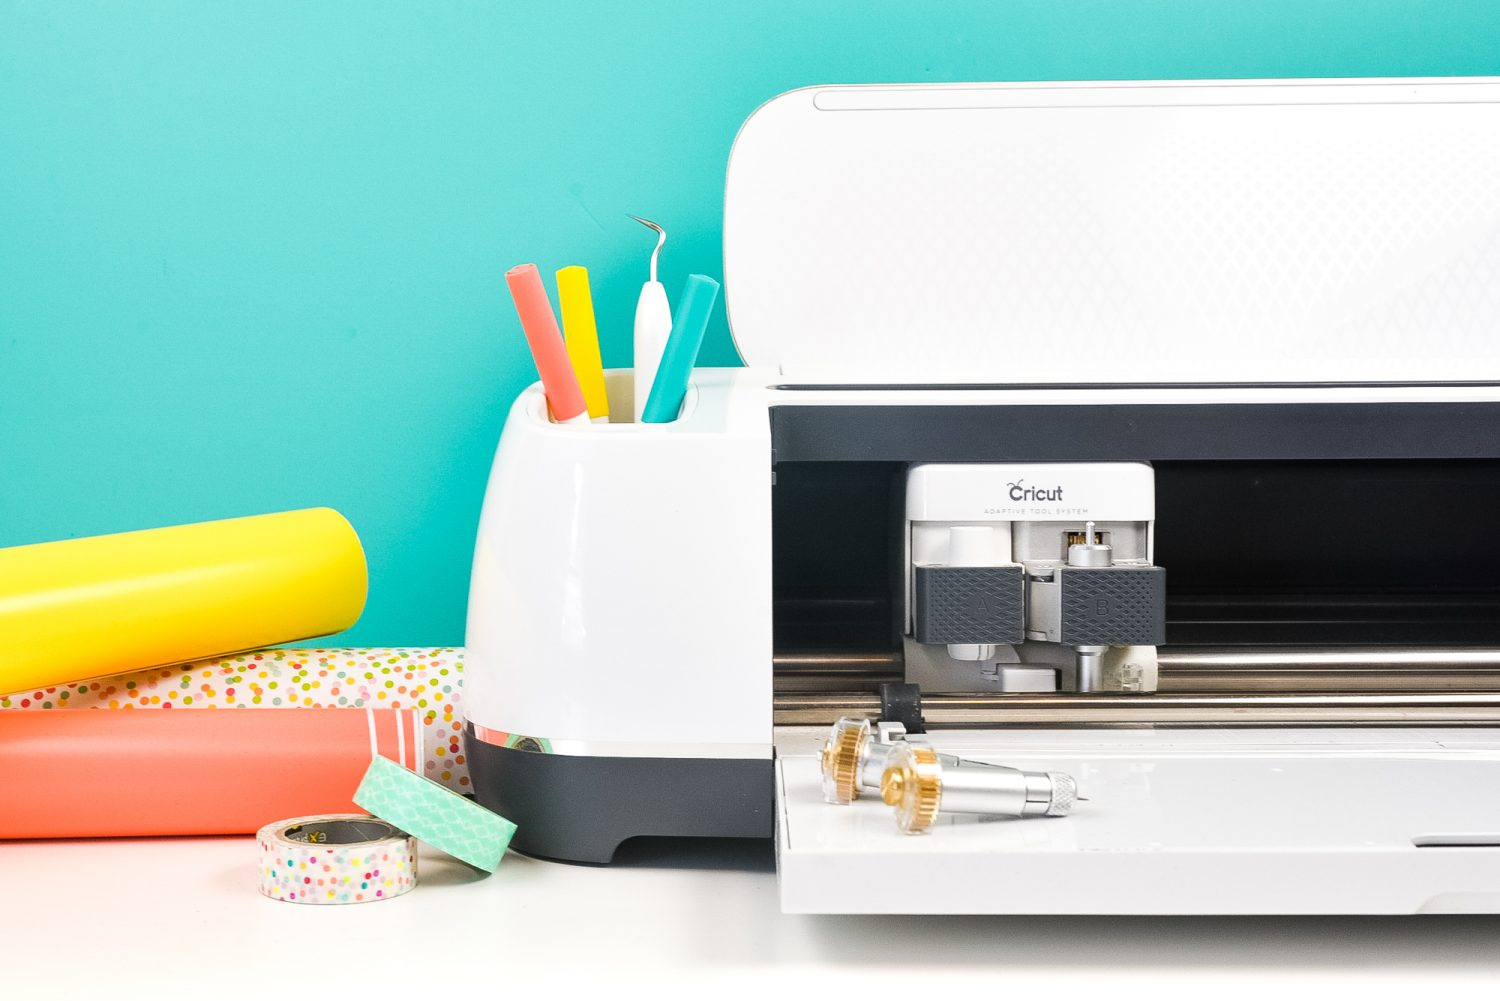 Cricut Maker with materials and pens